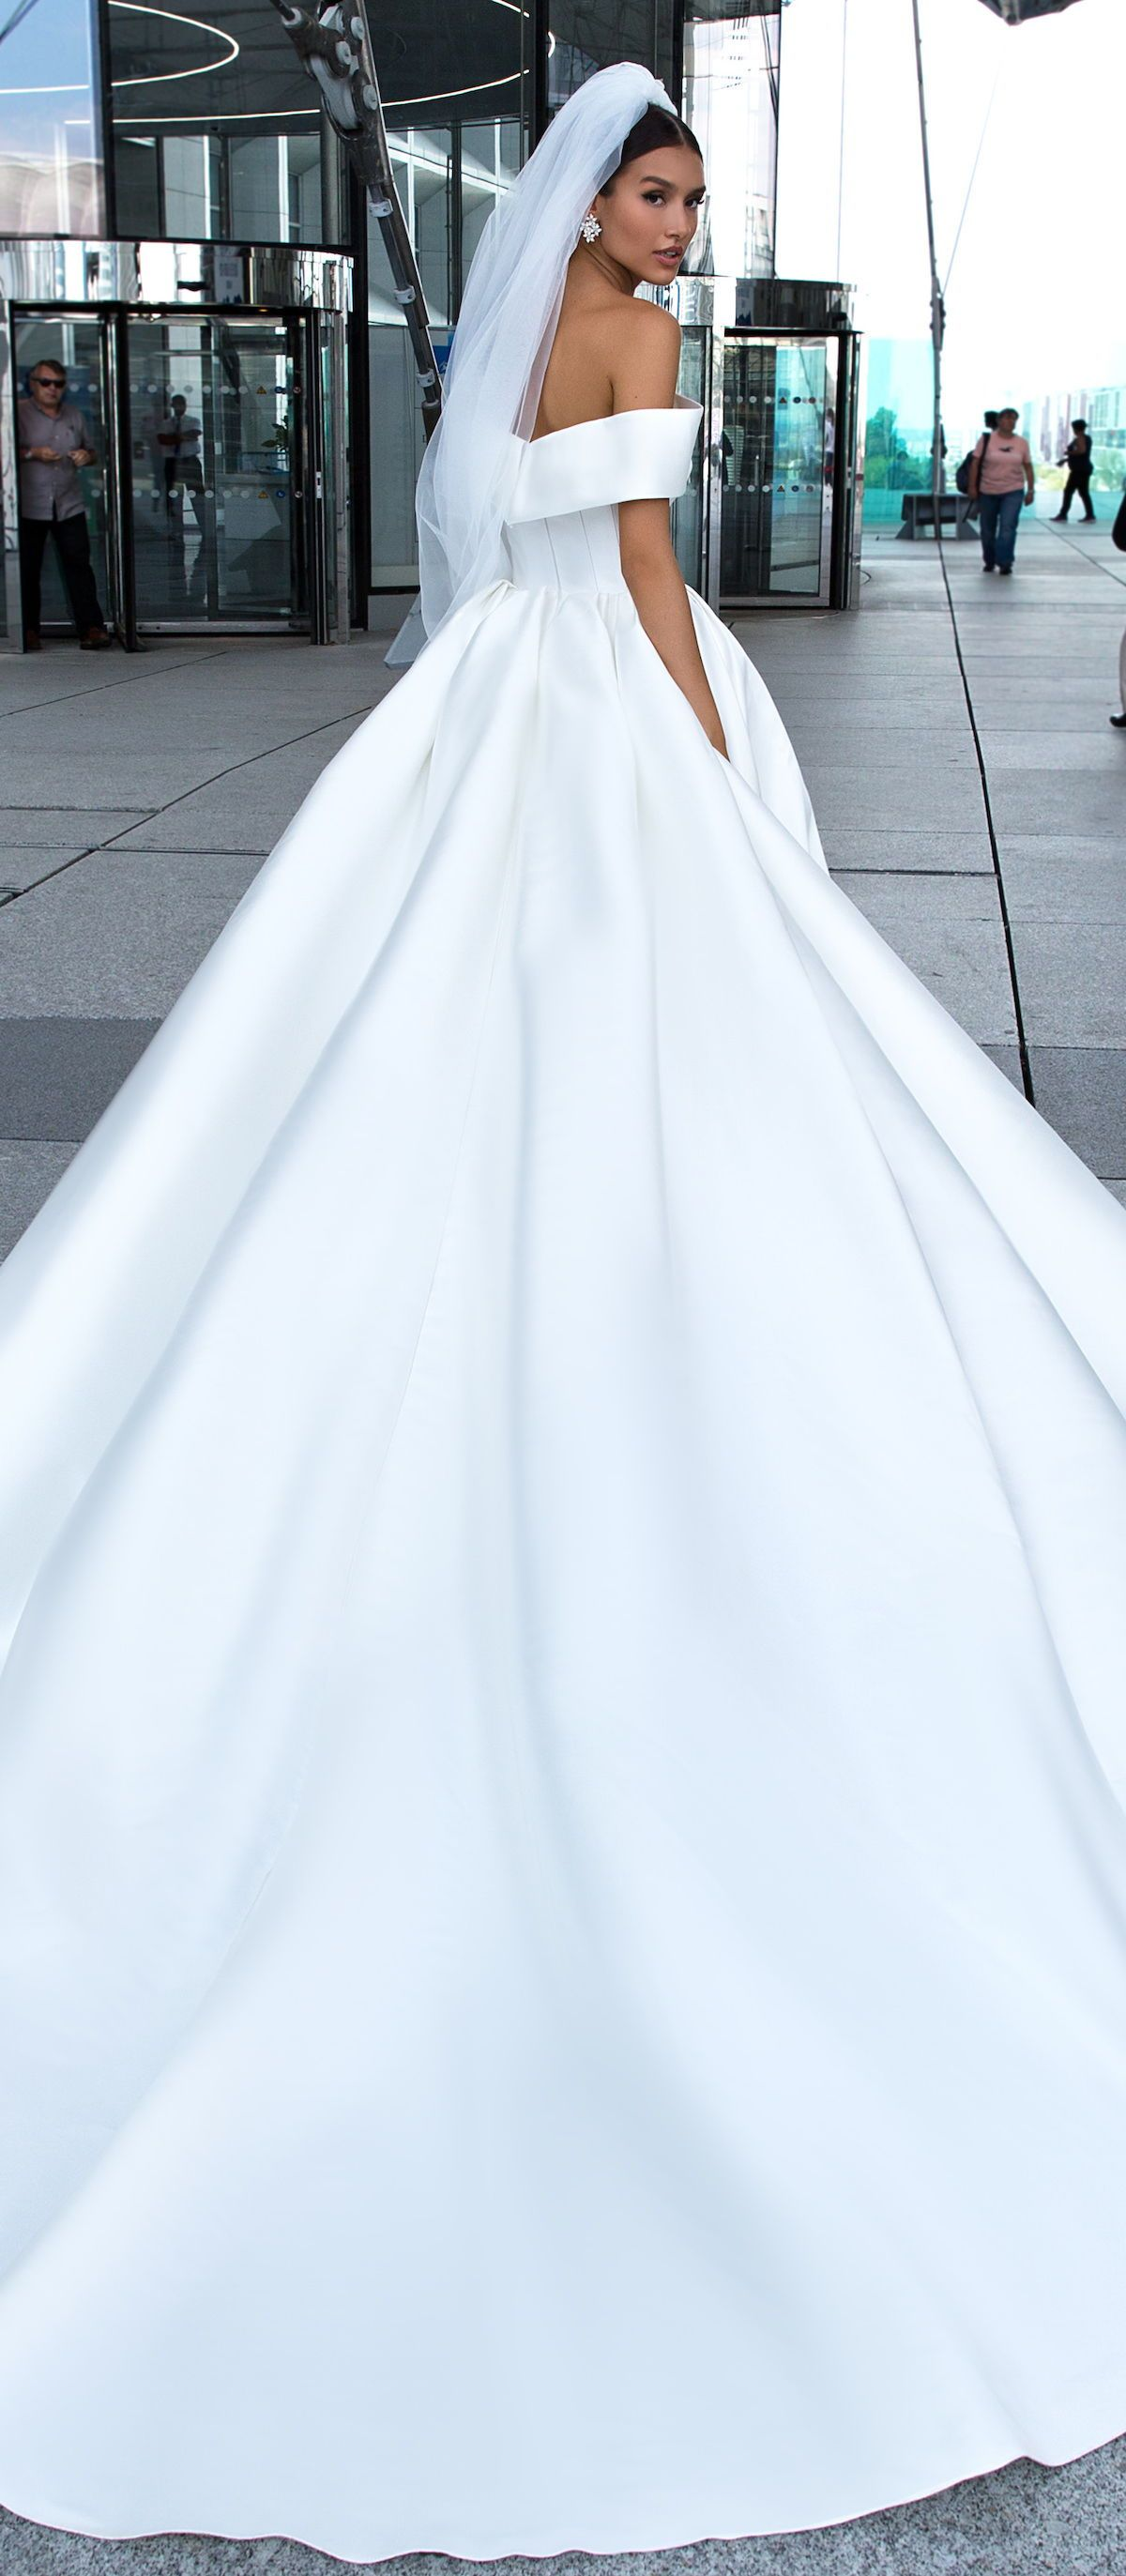 Crystal Design Ball Gown Wedding Dress Claide Simple Princess Bridal Gown Off The Shoulder Ball Gown Wedding Dress Wedding Dresses Princess Wedding Dresses